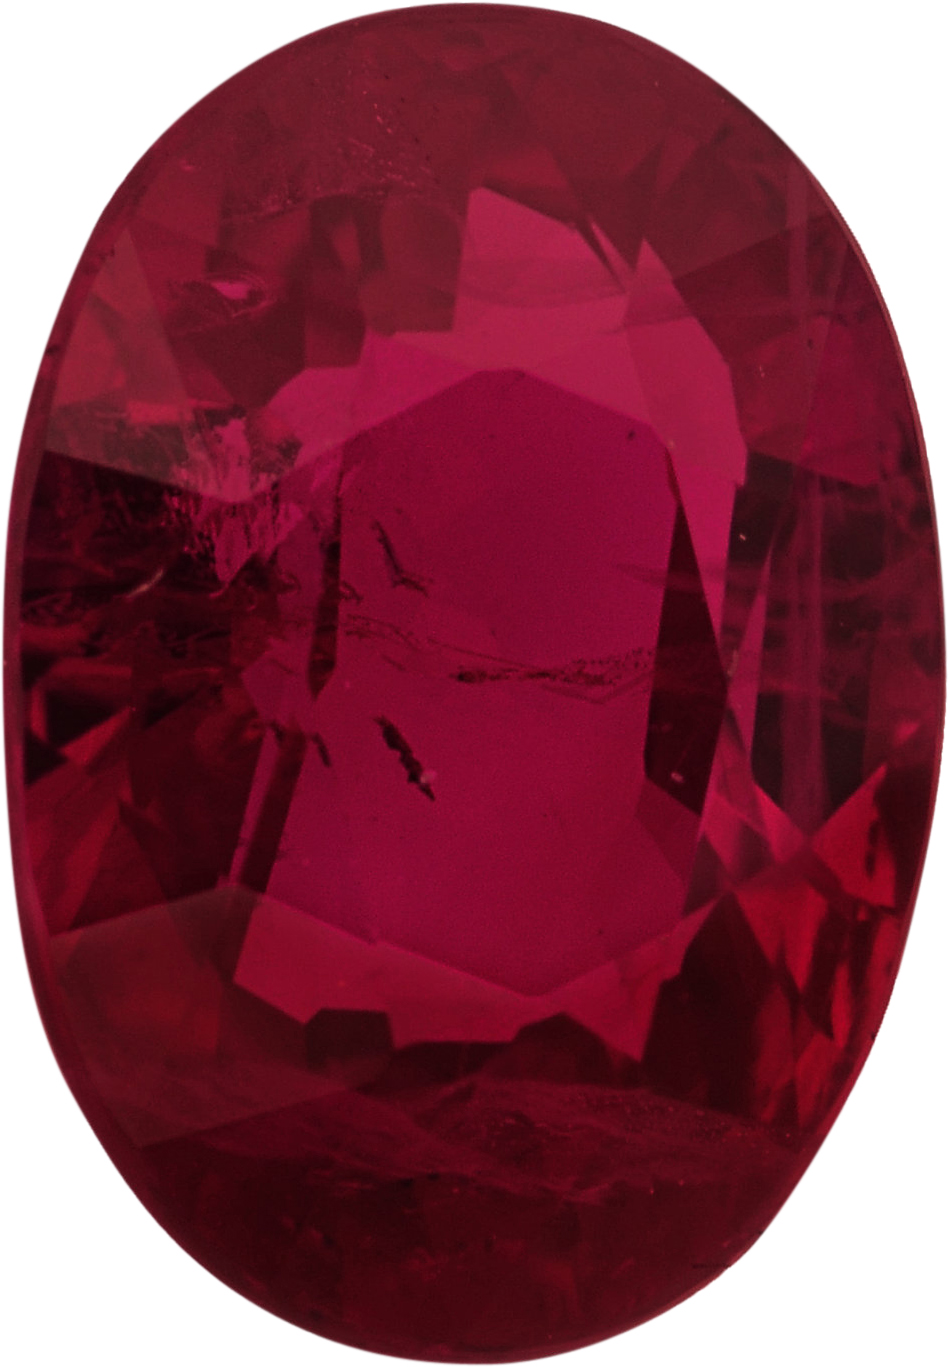 Good Looking Oval Cut Loose Ruby Gem,  Red Color, 7.13 x 5.06 mm, 1.18 carats